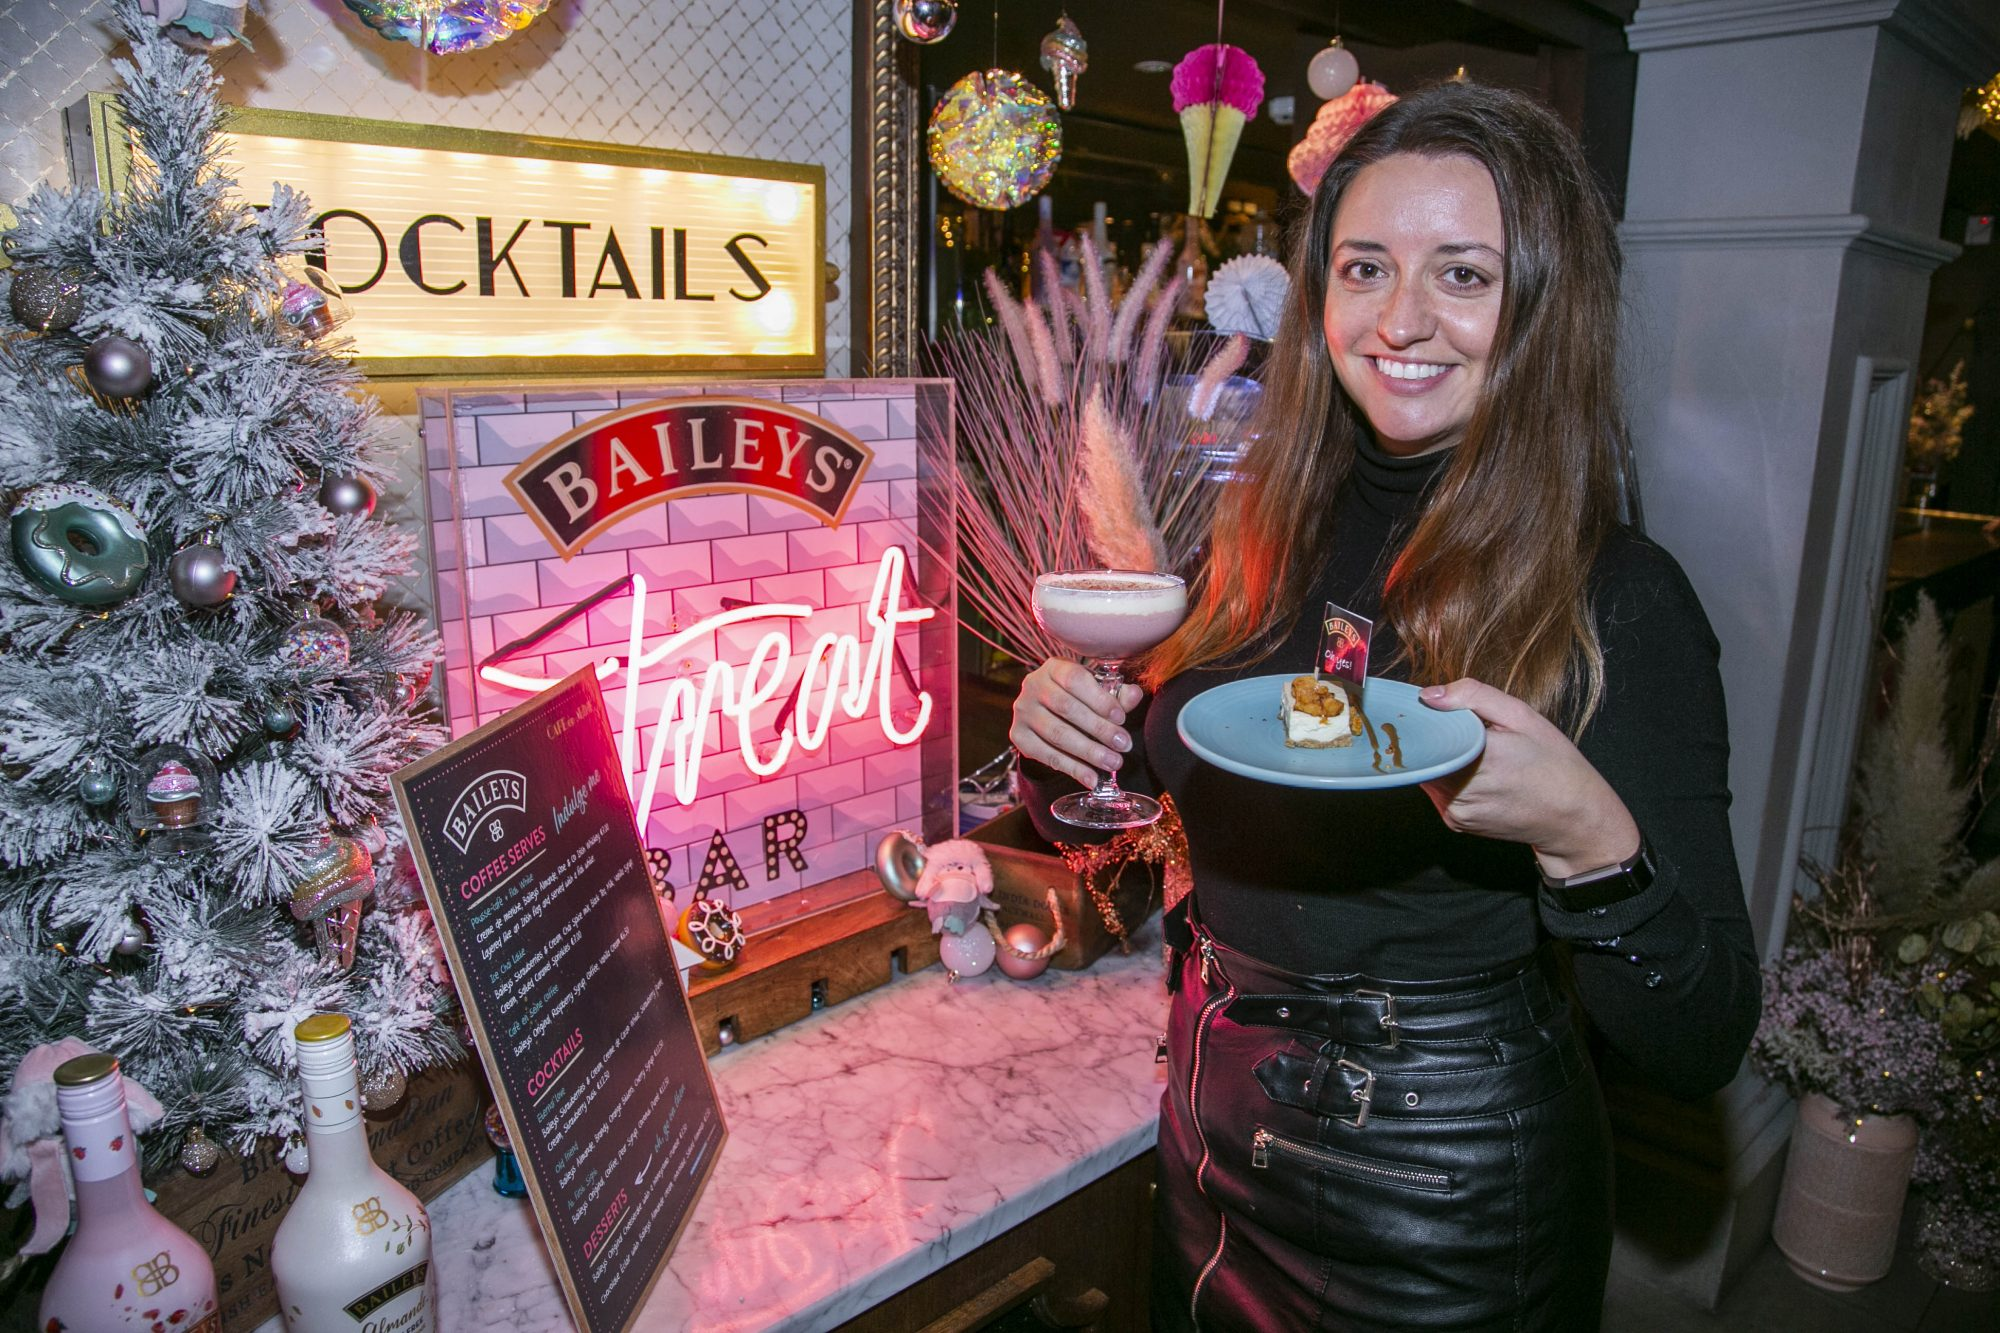 Guests pictured celebrating the launch of Bailey's Treat Bar series with a mix of irresistible exclusive Baileys desserts and cocktails at Café en Seine